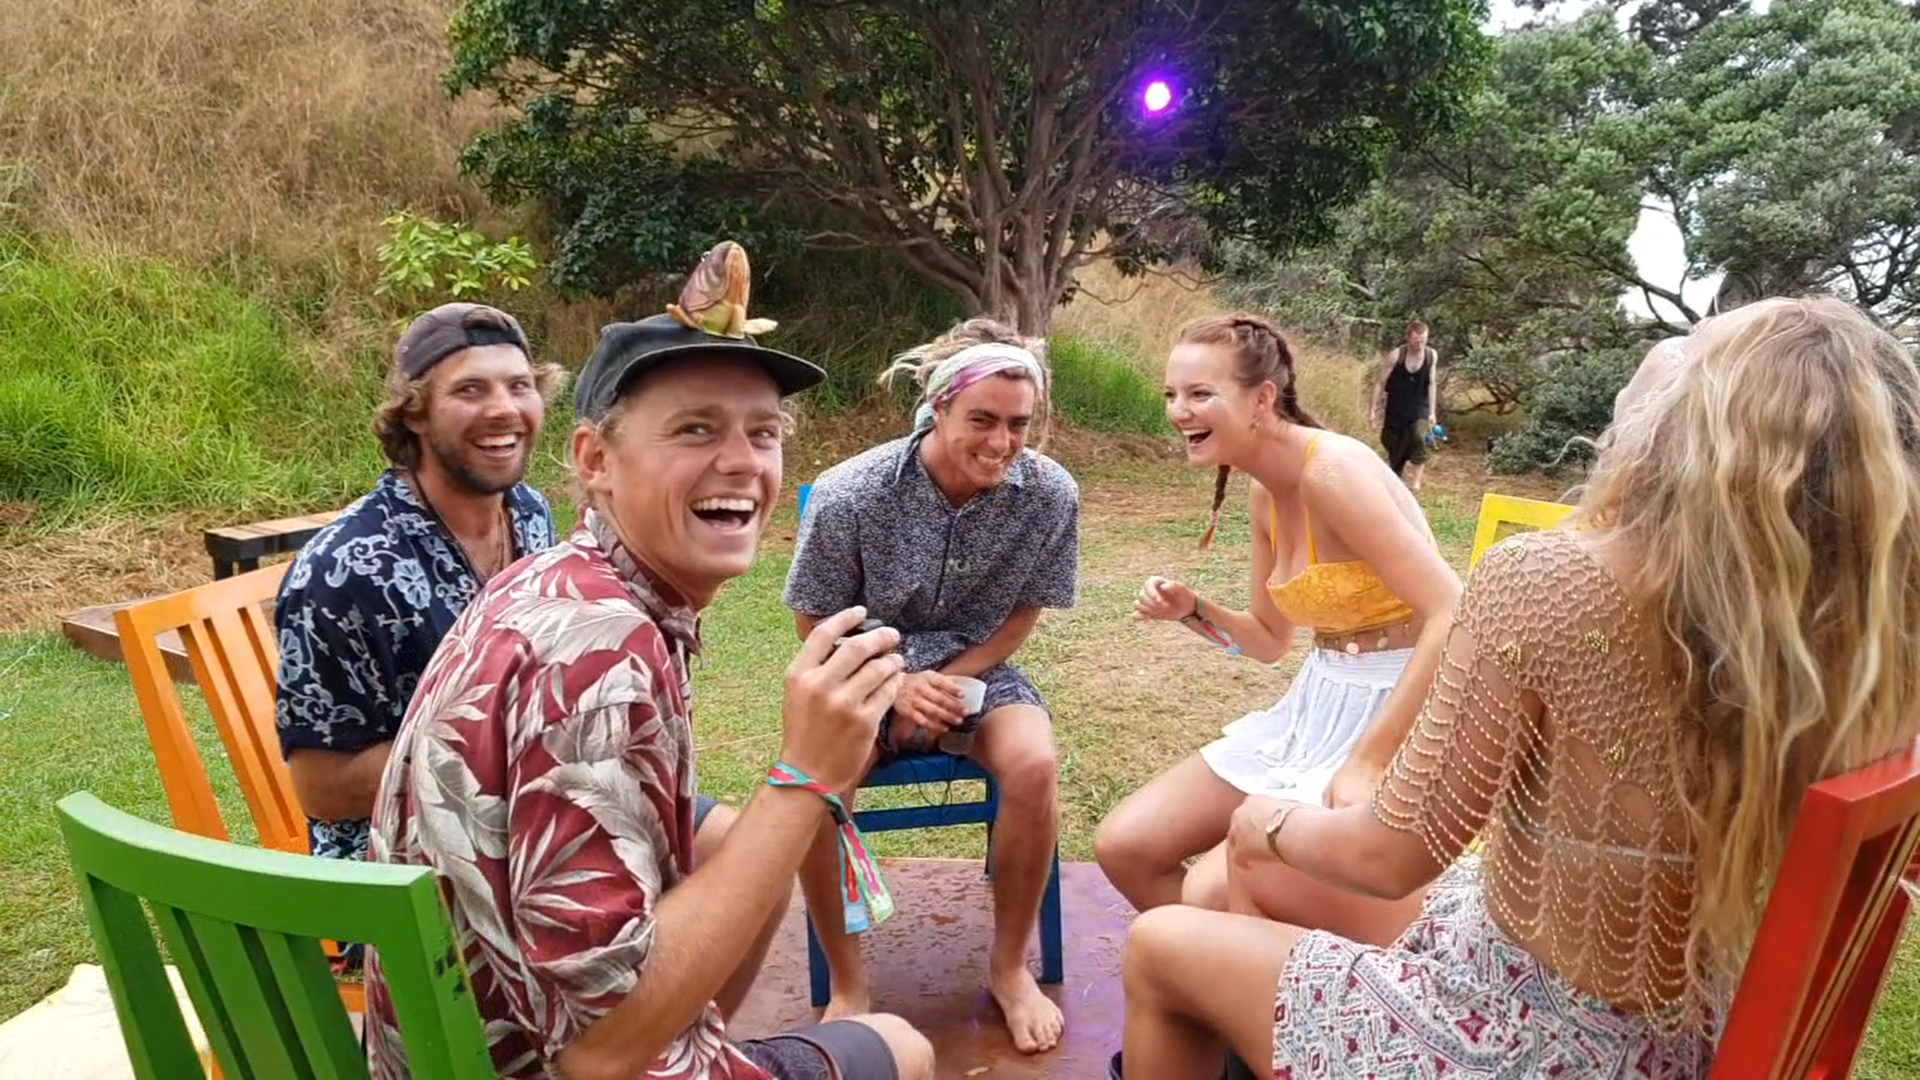 Musical Chairs at Splore